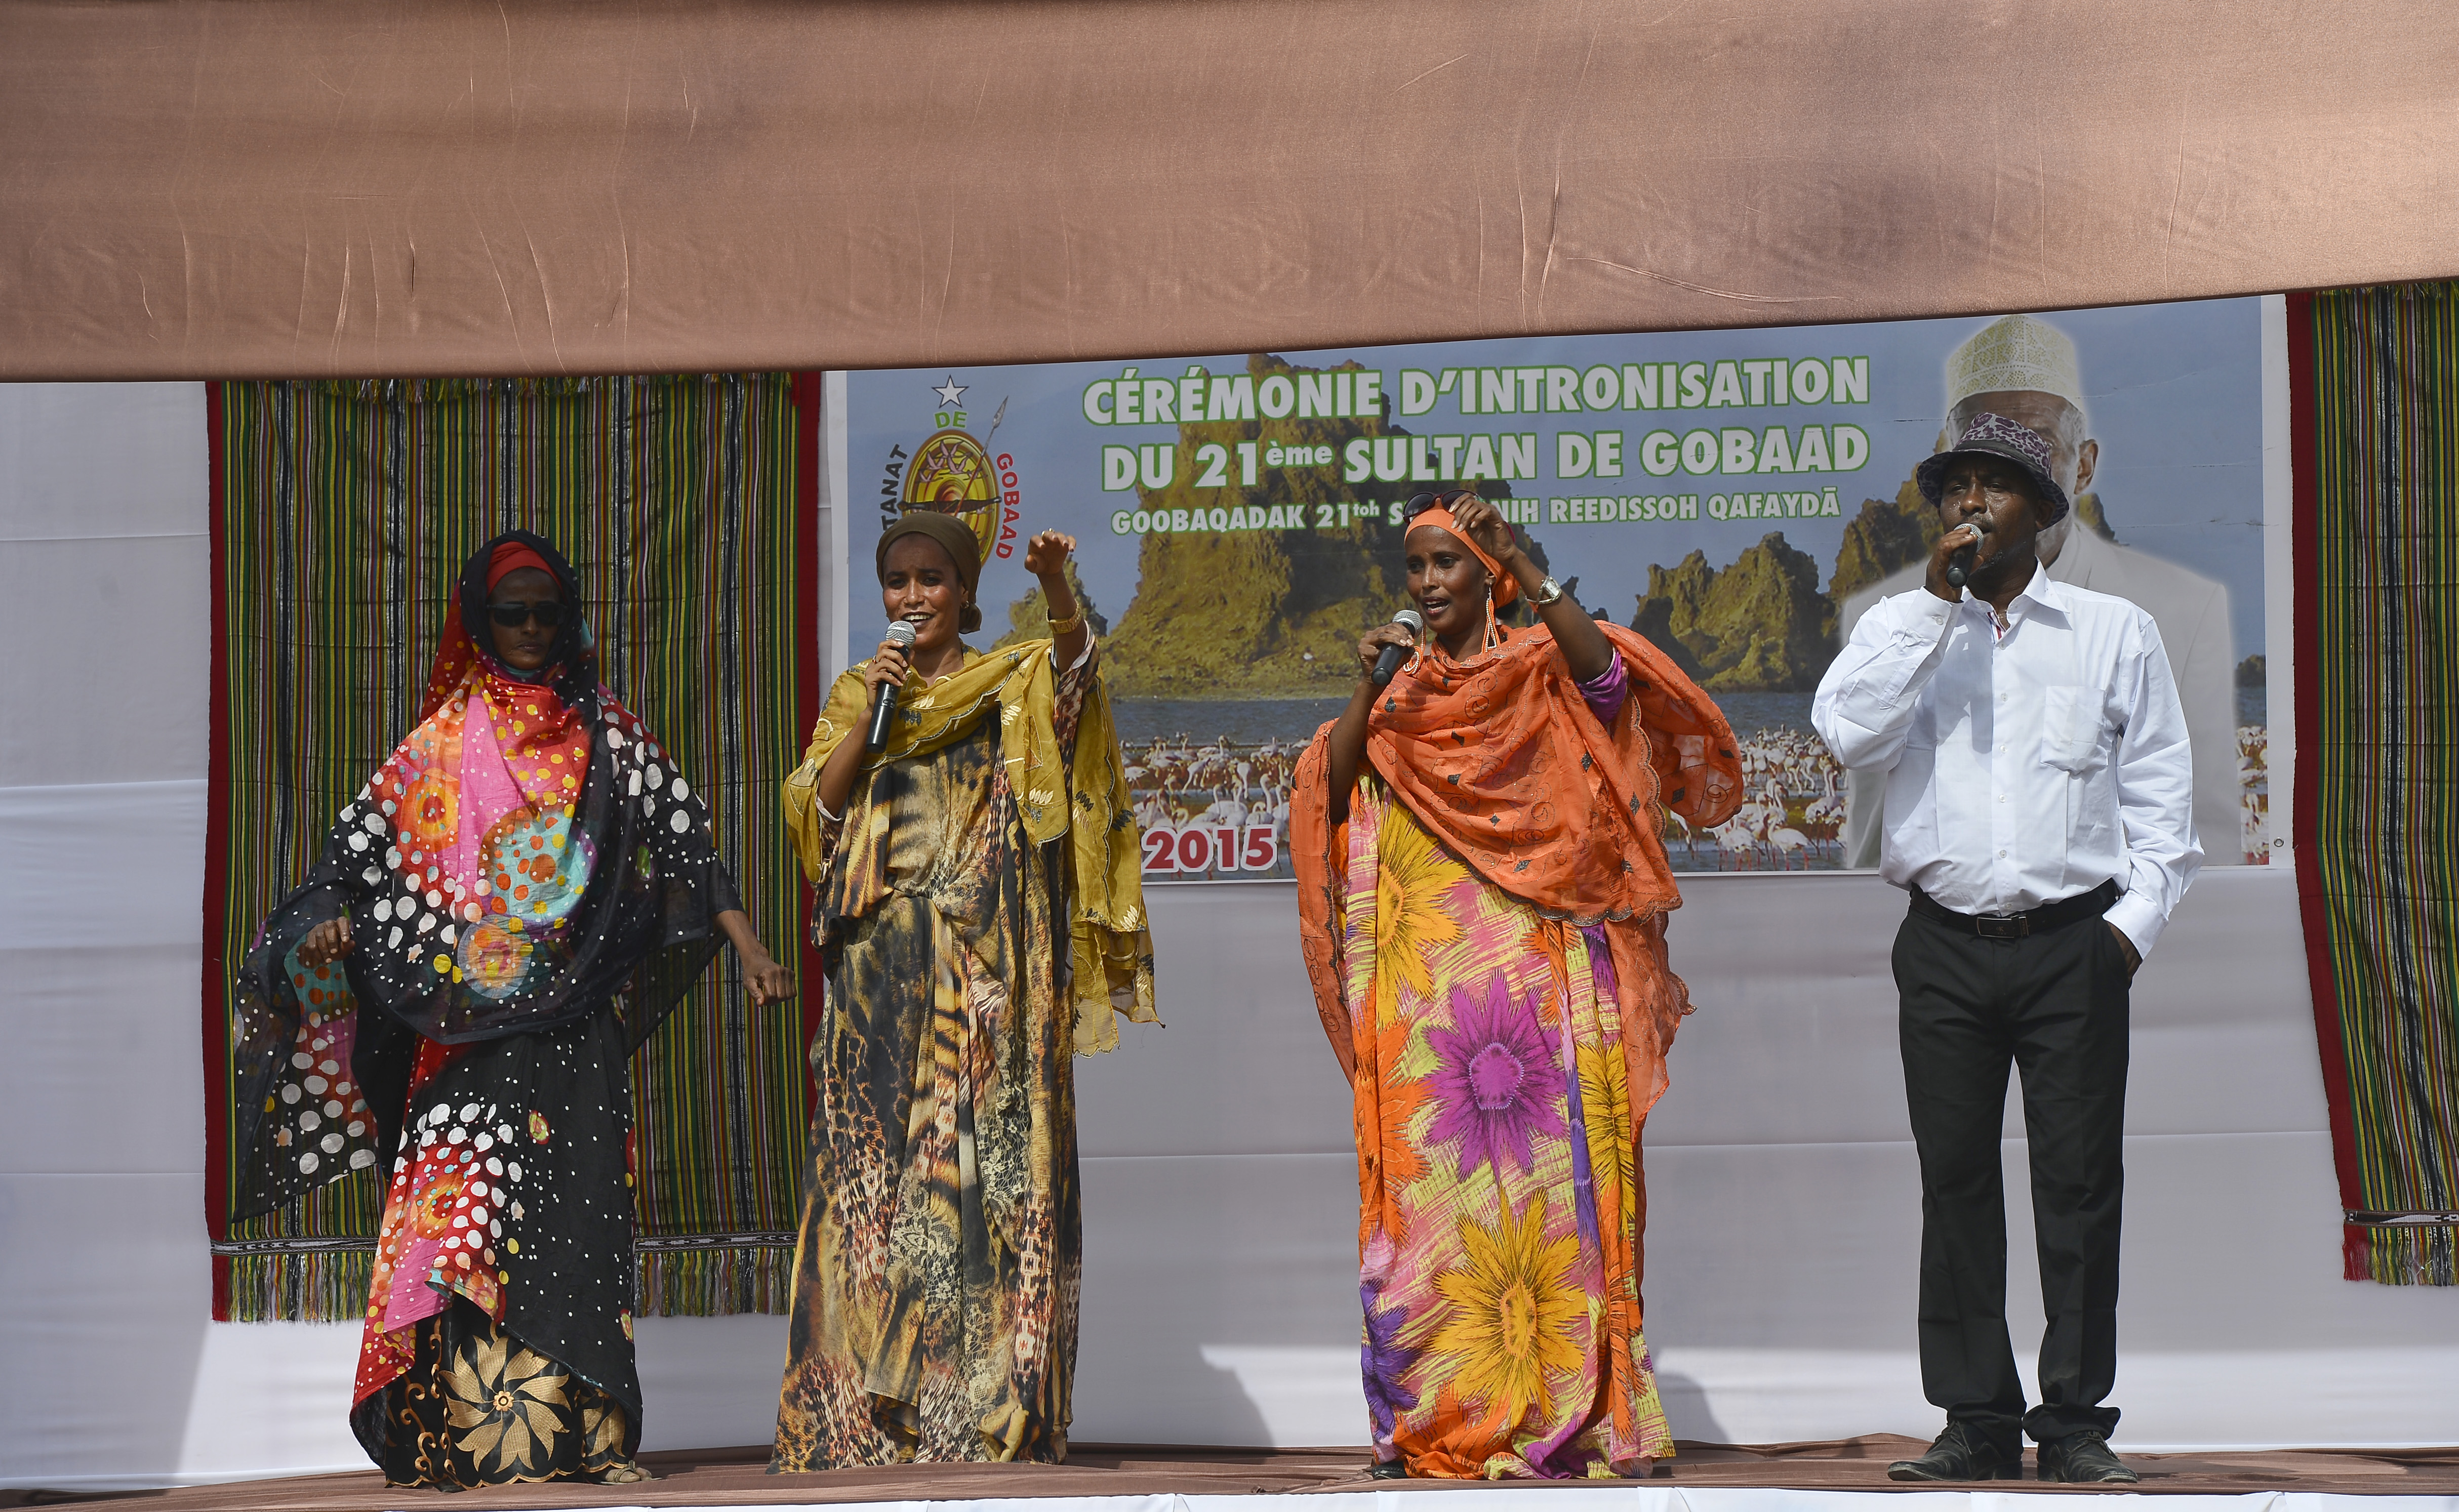 Singers perform at the 21st Induction Ceremony of the Sultan of Gobaad in Dikhil, Djibouti, May 22, 2015. Members of the U.S. Army's 404th Civil Affairs Battalion, assigned to Combined Joint Task Force-Horn of Africa, attended the historical event. (U.S. Air Force photo by Senior Airman Nesha Humes)